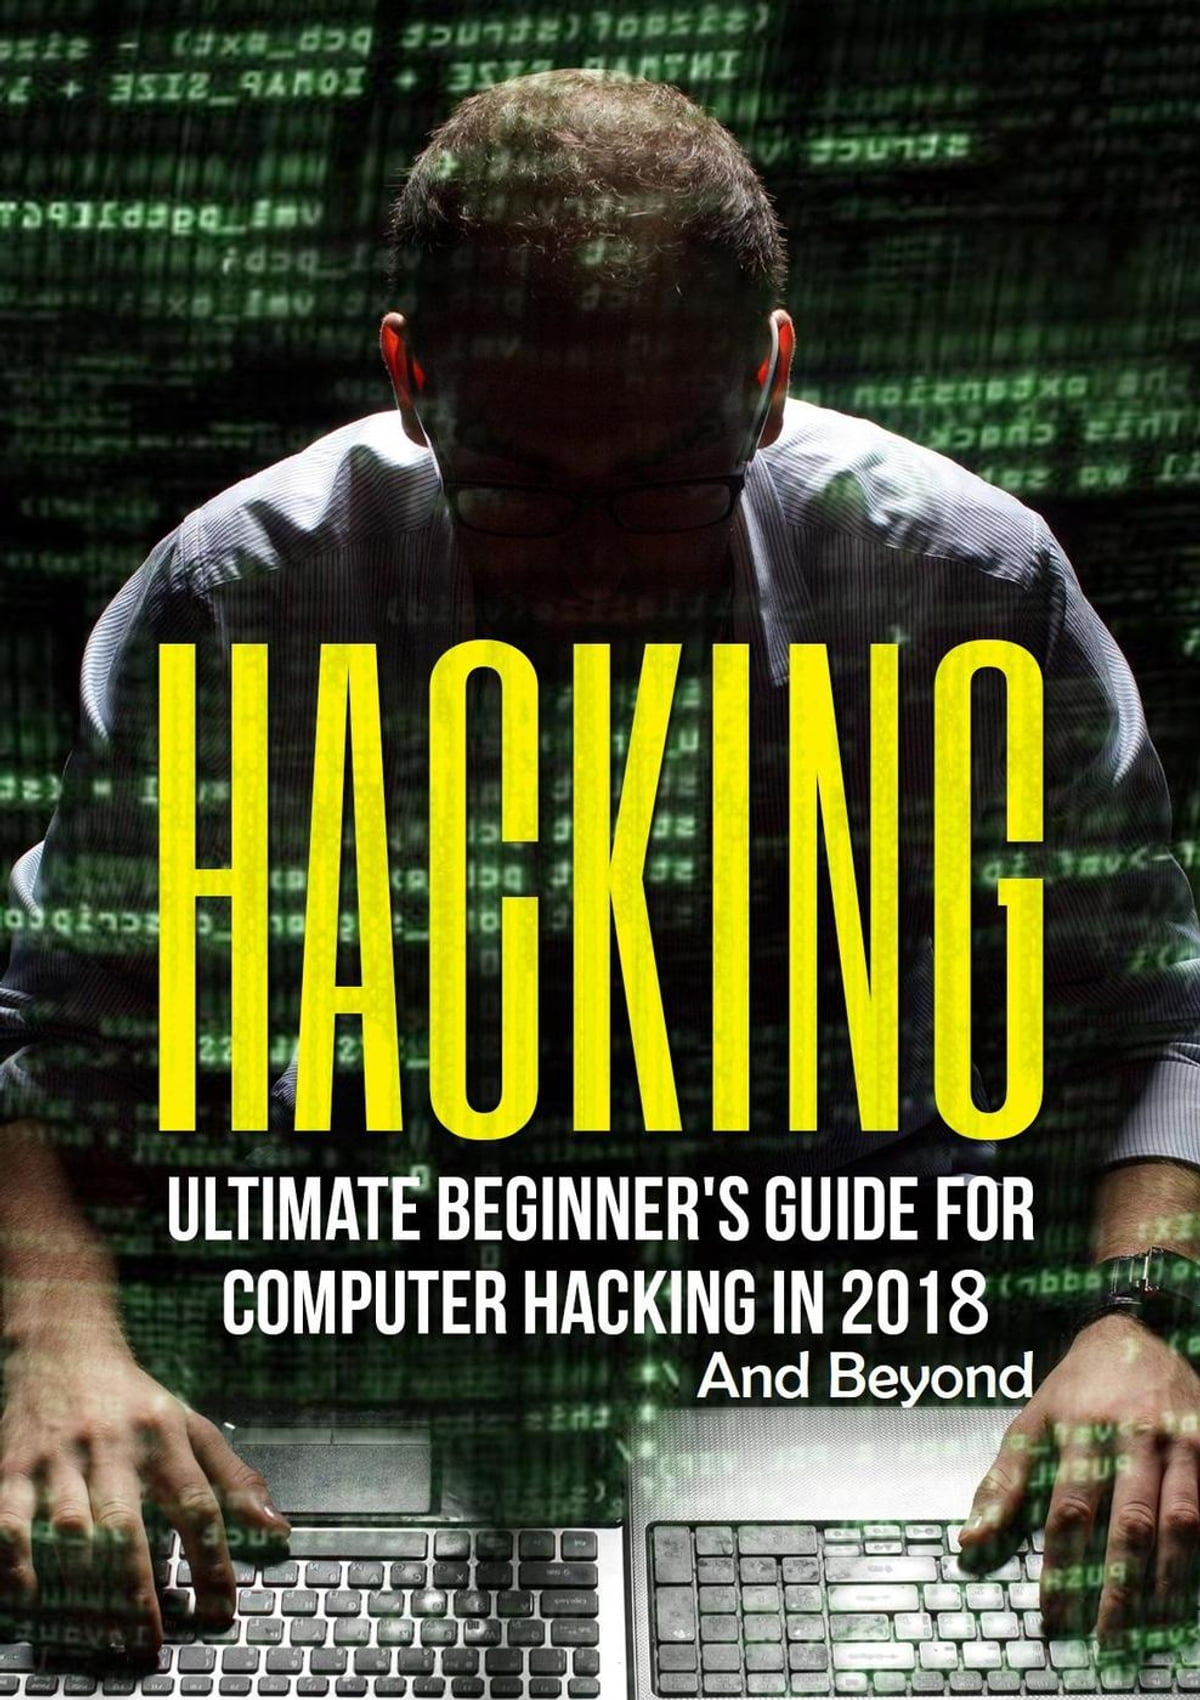 Hacking: Ultimate Beginner's Guide for Computer Hacking in 2018 and Beyond  ebook by Dexter Jackson - Rakuten Kobo